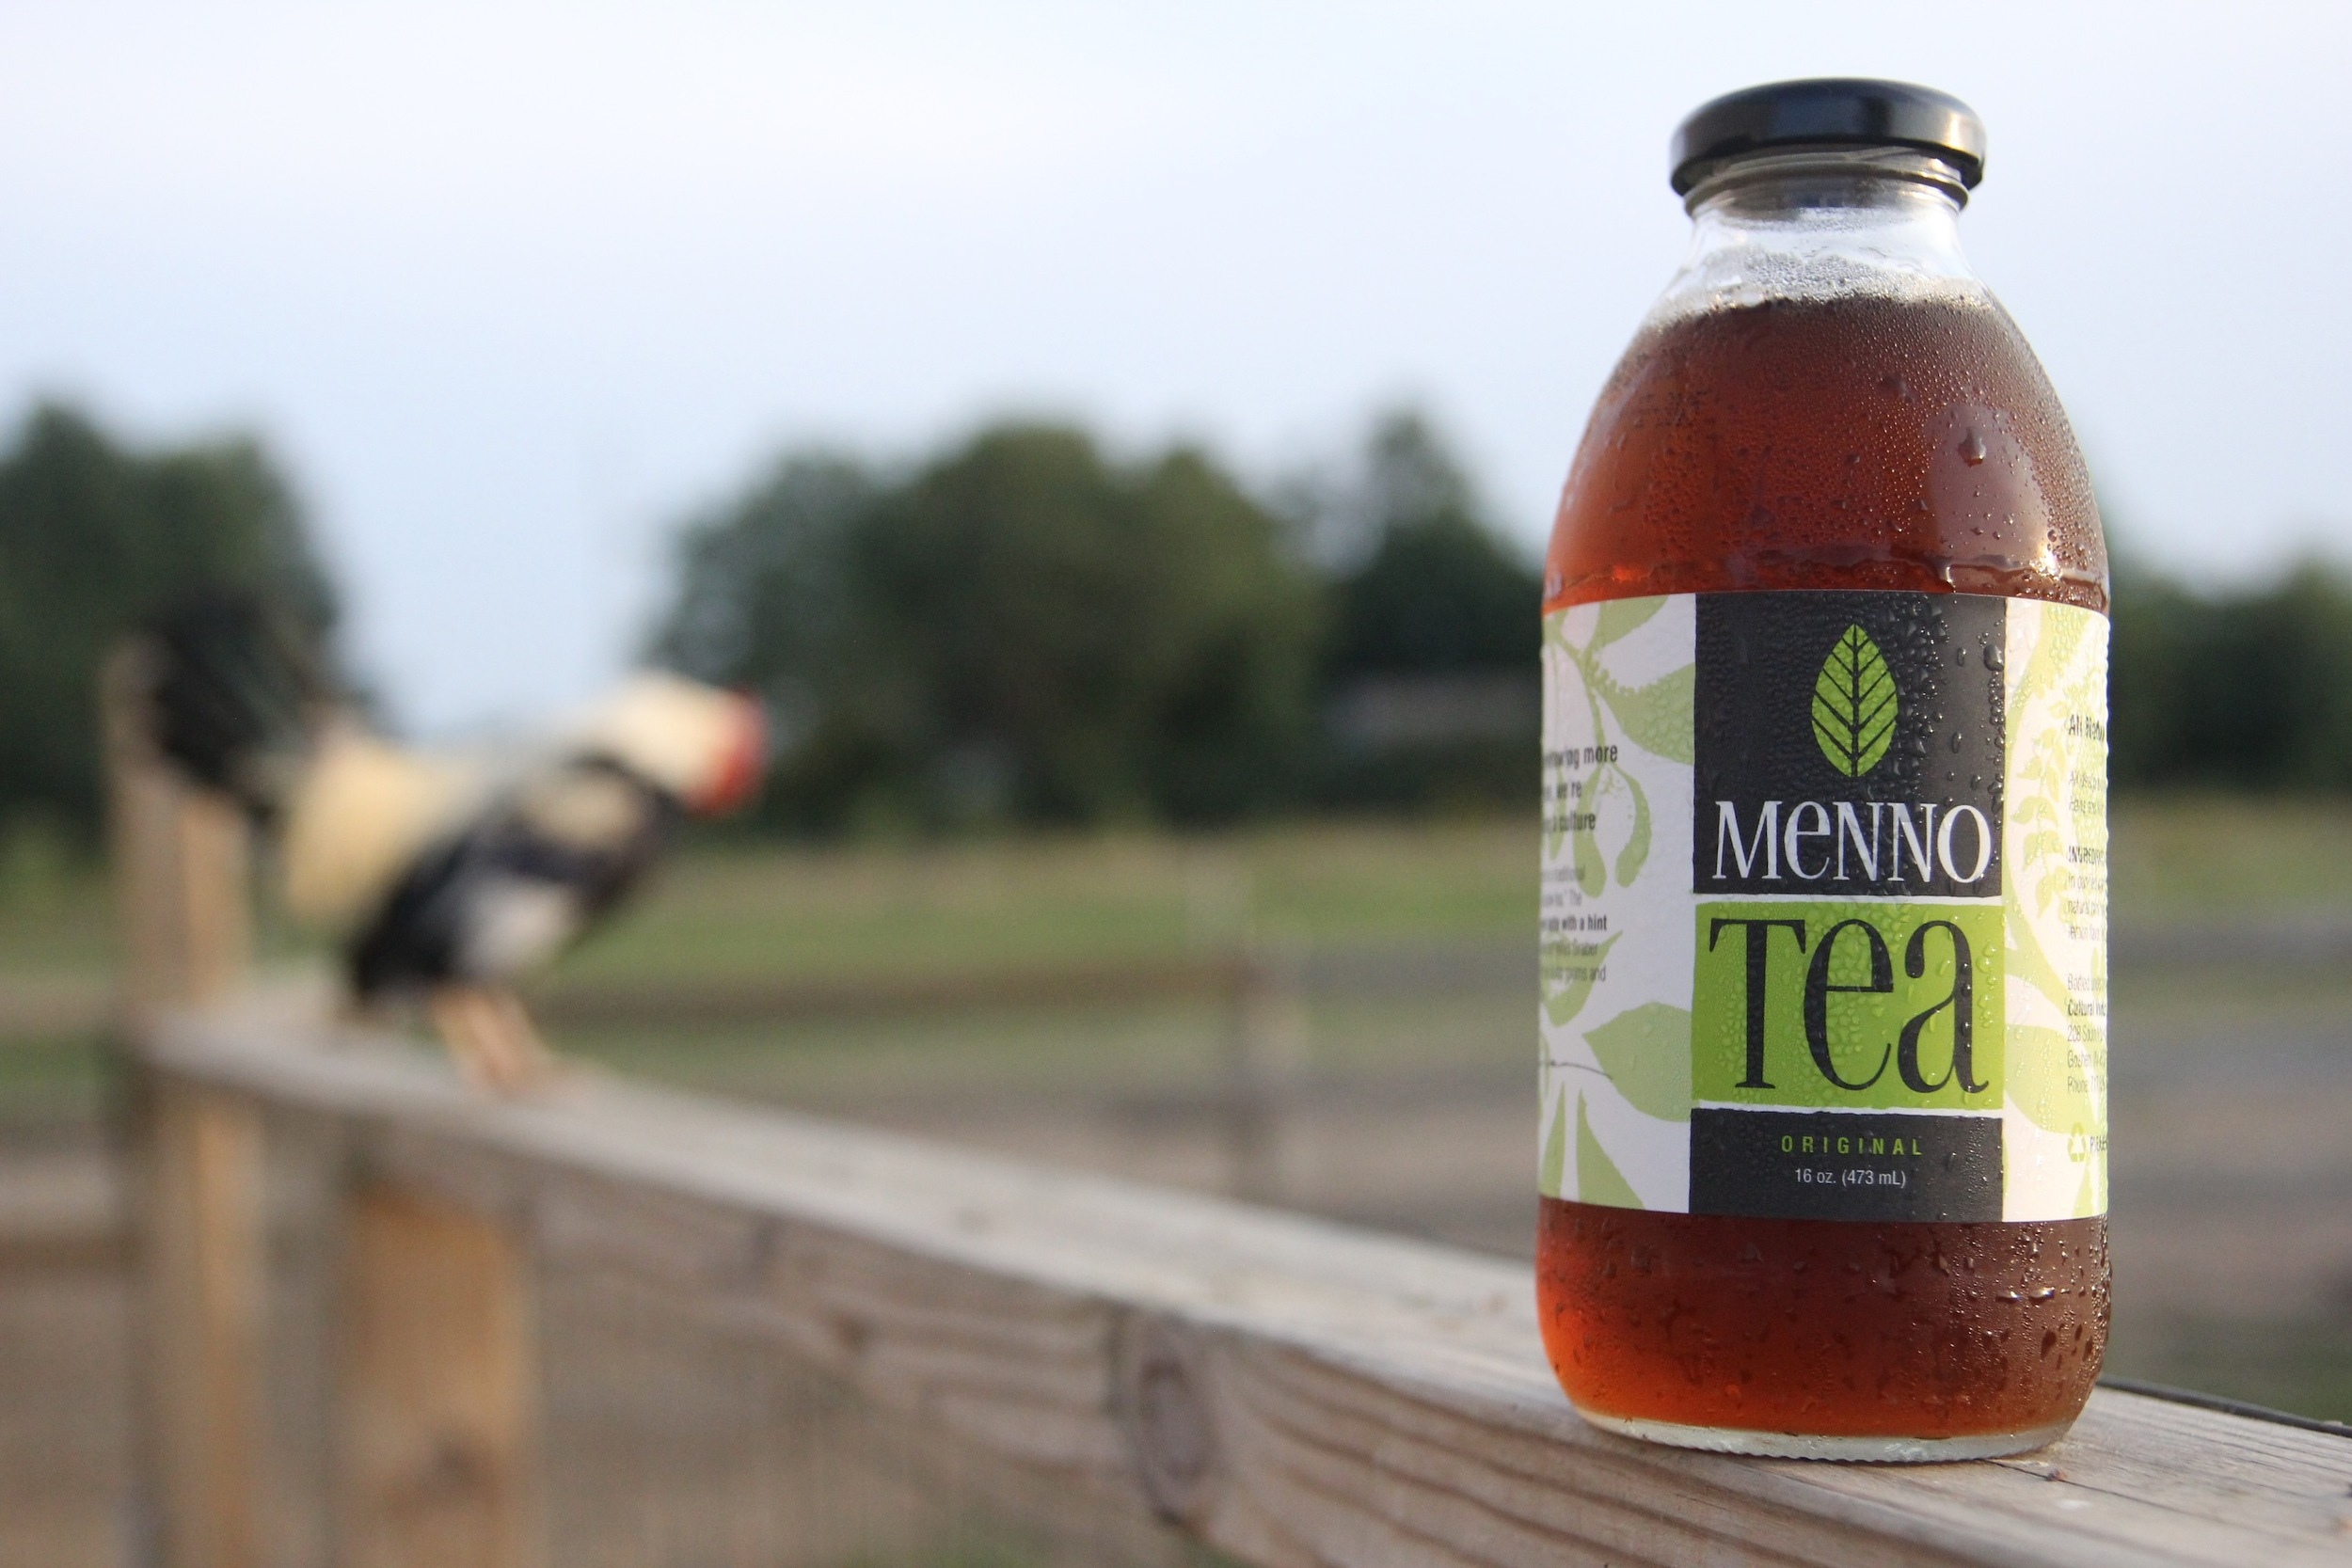 menno-tea-mint-tea-amish-mennonite-spearmint-peppermint-bottled-tea-dried-tea-hot-tea